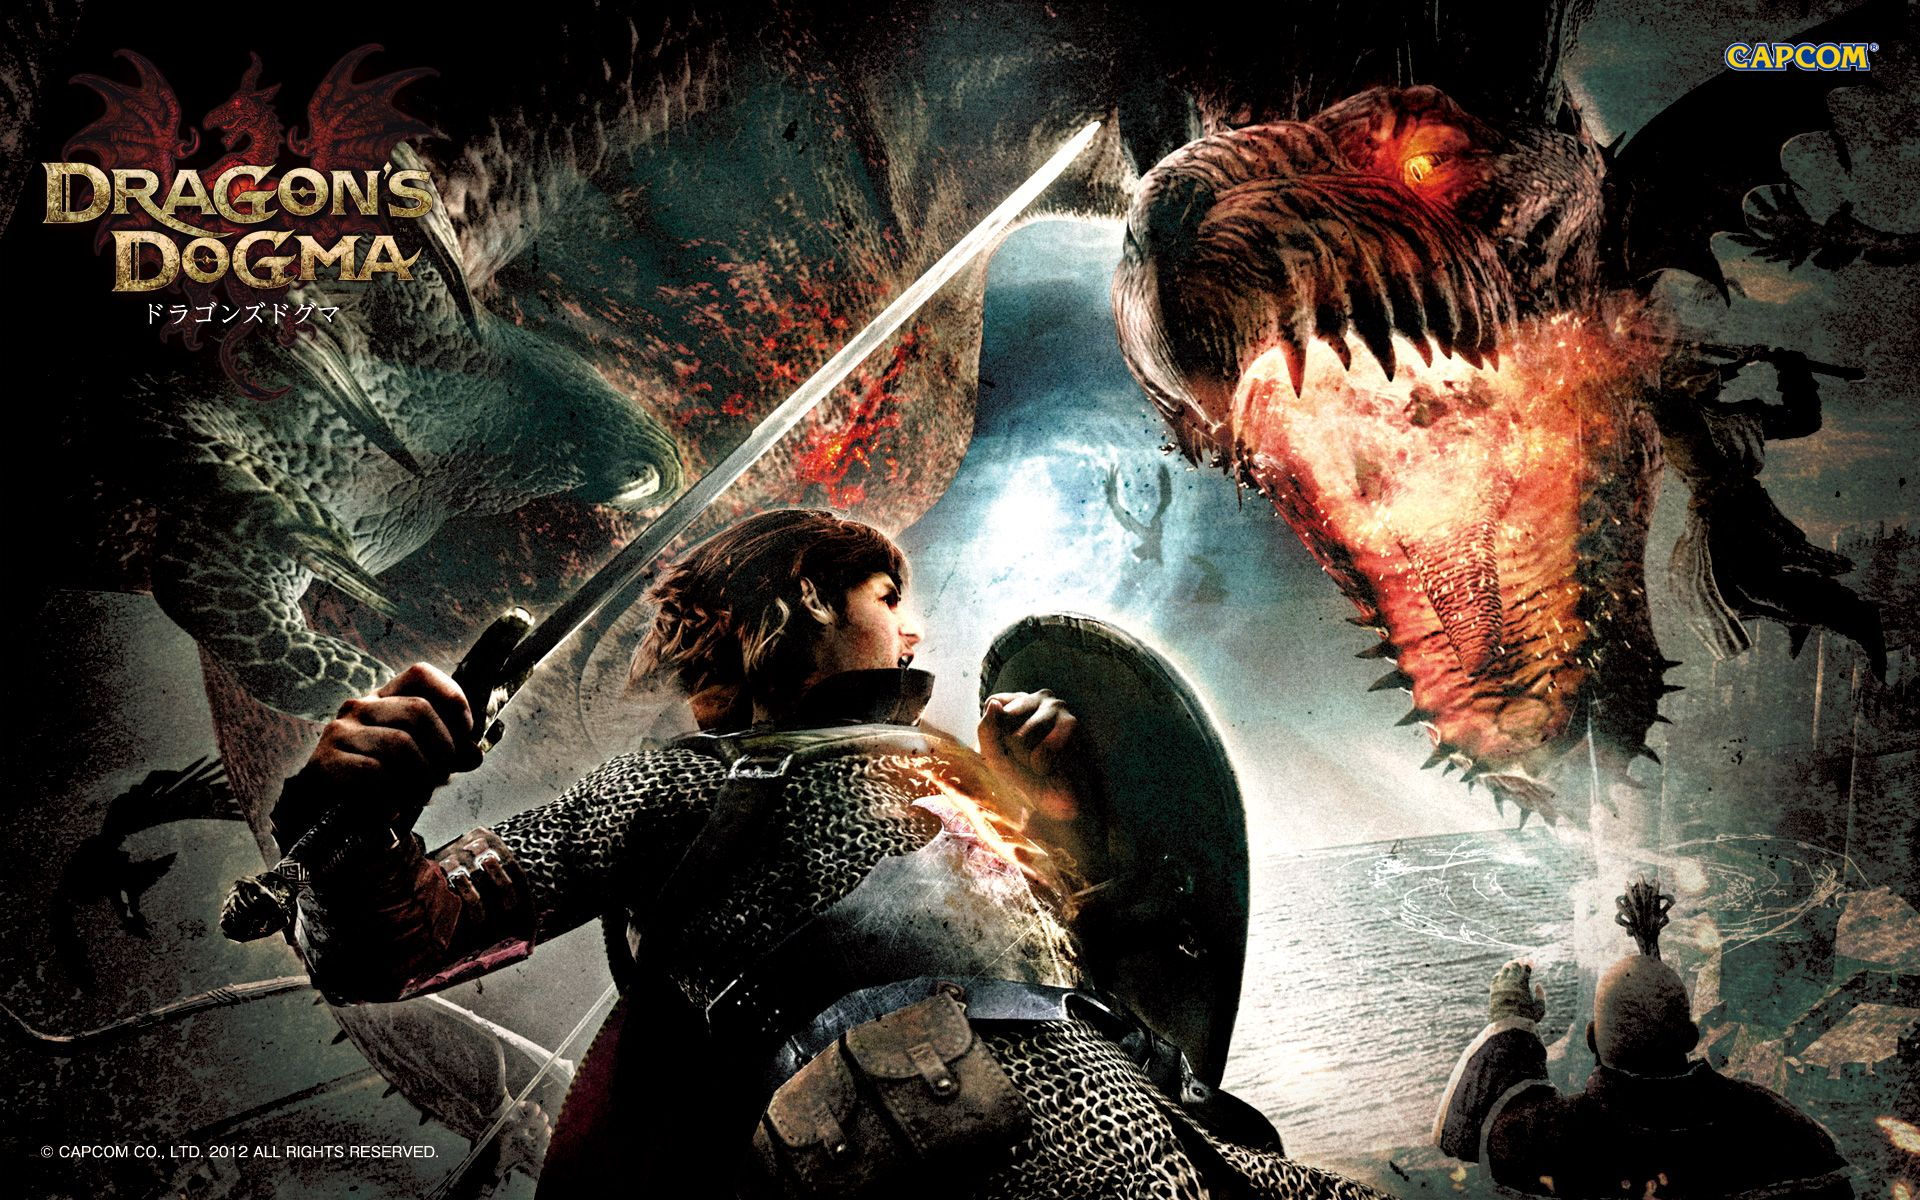 Free Download Dragons Dogma Dark Arisen Hd Wallpaper 28 1920 X